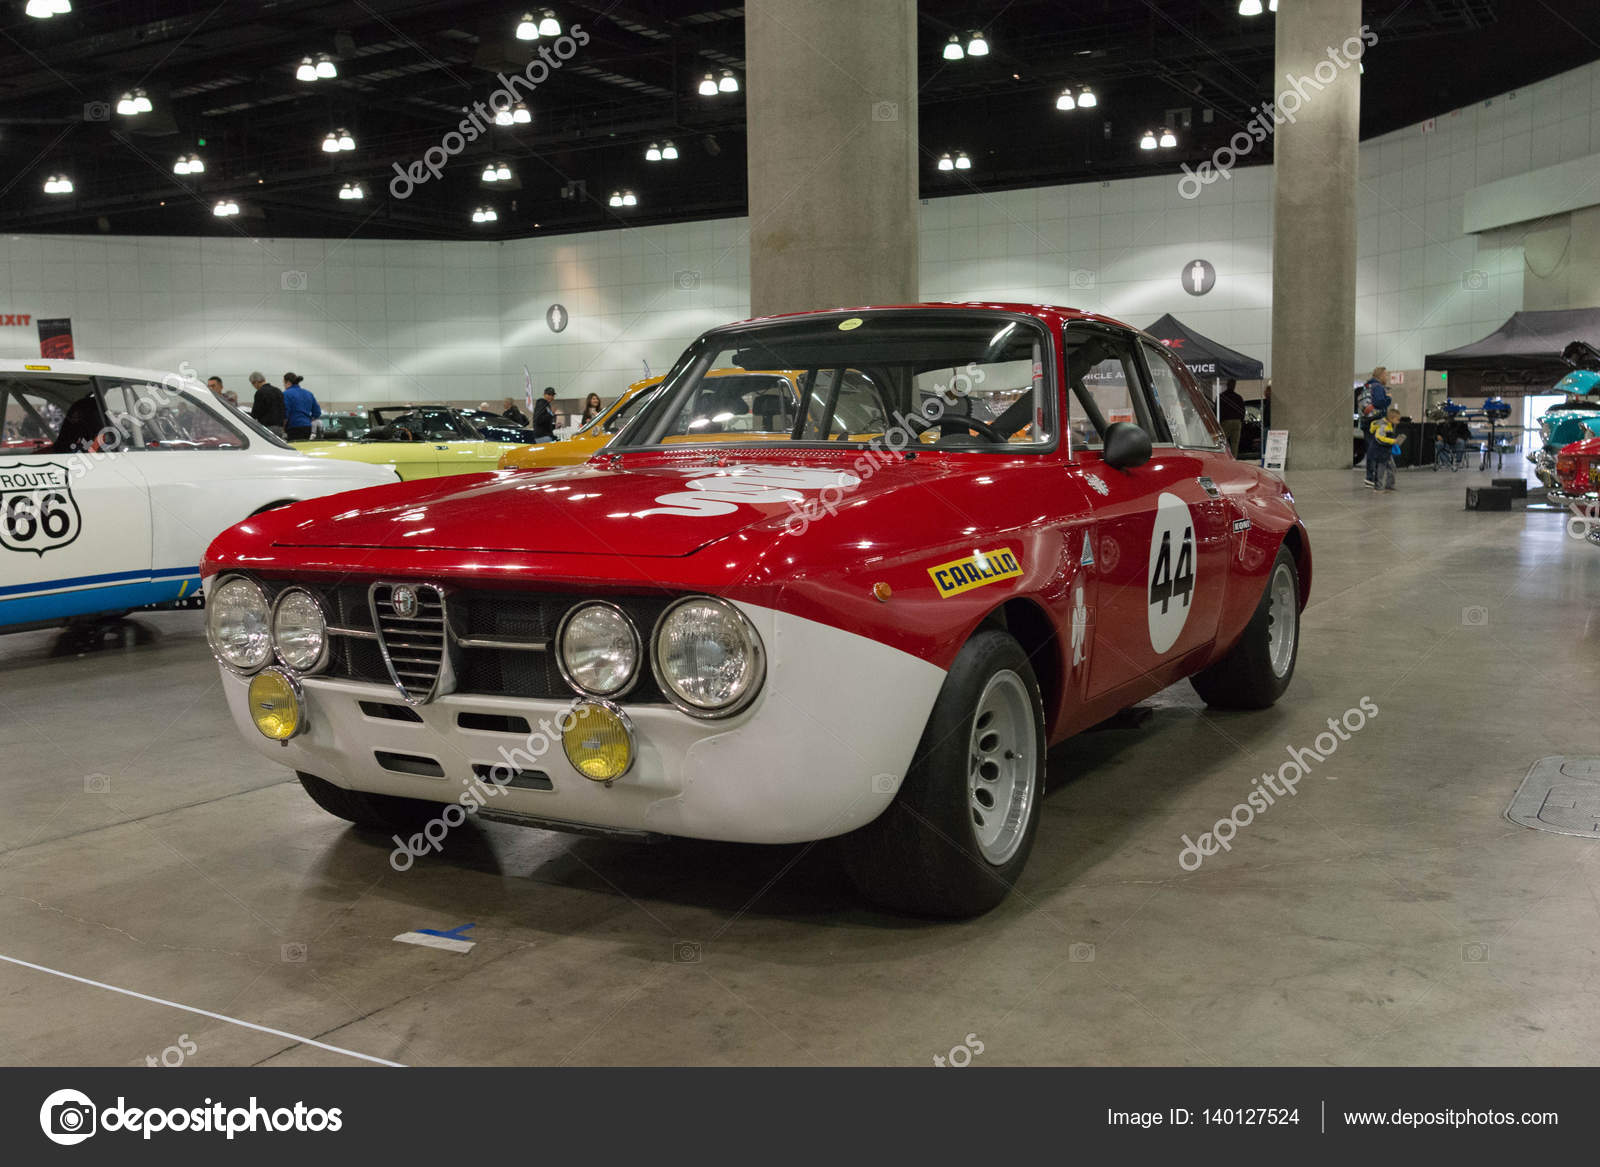 alfa romeo gta – stock editorial photo © bettorodrigues #140127524